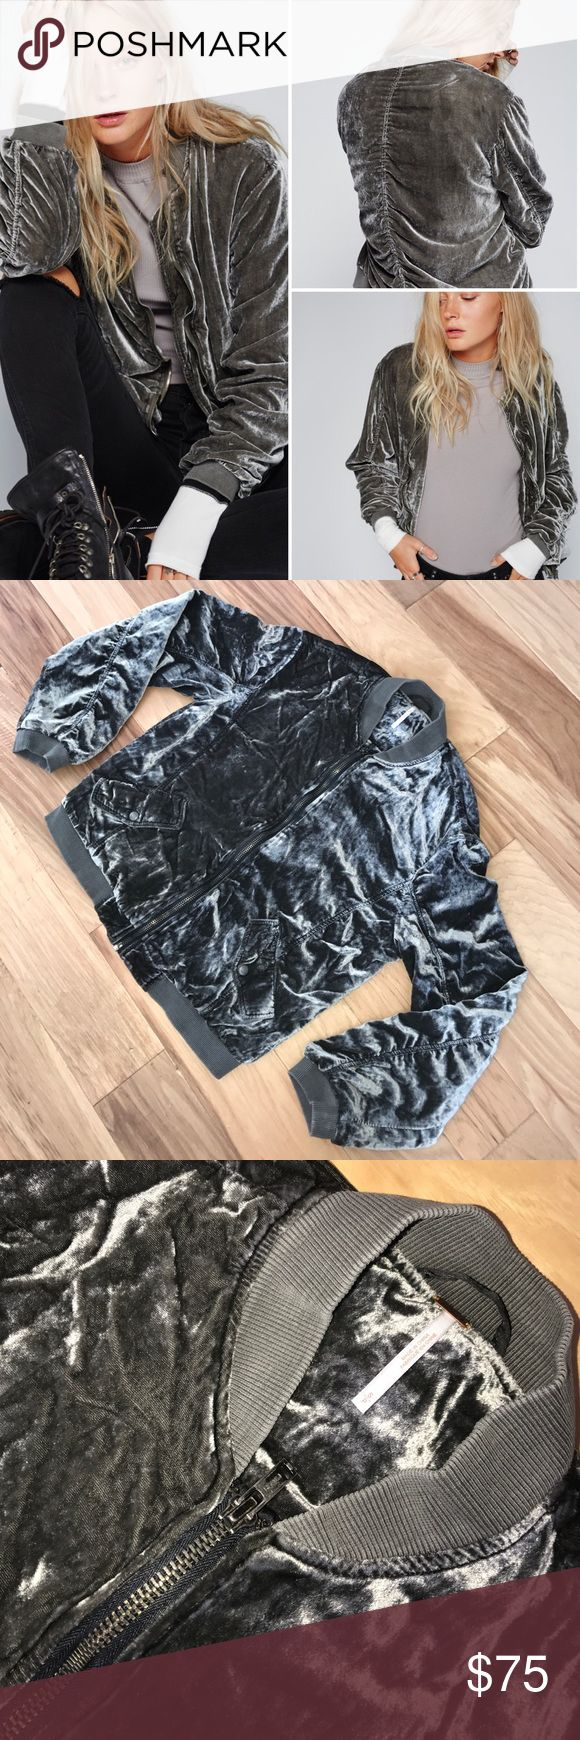 """Free people Velvet grey bomber jacket small❌Trade NWOT- No Wear / Ultra cool crushed velvet bomber jacket with ruched detailing on the sleeves and ribbed trim. Front zipper closure and hip pockets with snaps. Easy silky lining.  75% Viscose 25% Nylon Machine Wash Cold/ Measurements for size Small Bust: 43"""" = 109.22 cm Length: 23"""" = 58.42 cm Sleeve Length: 21"""" = 53.34 cm Free People Tops"""